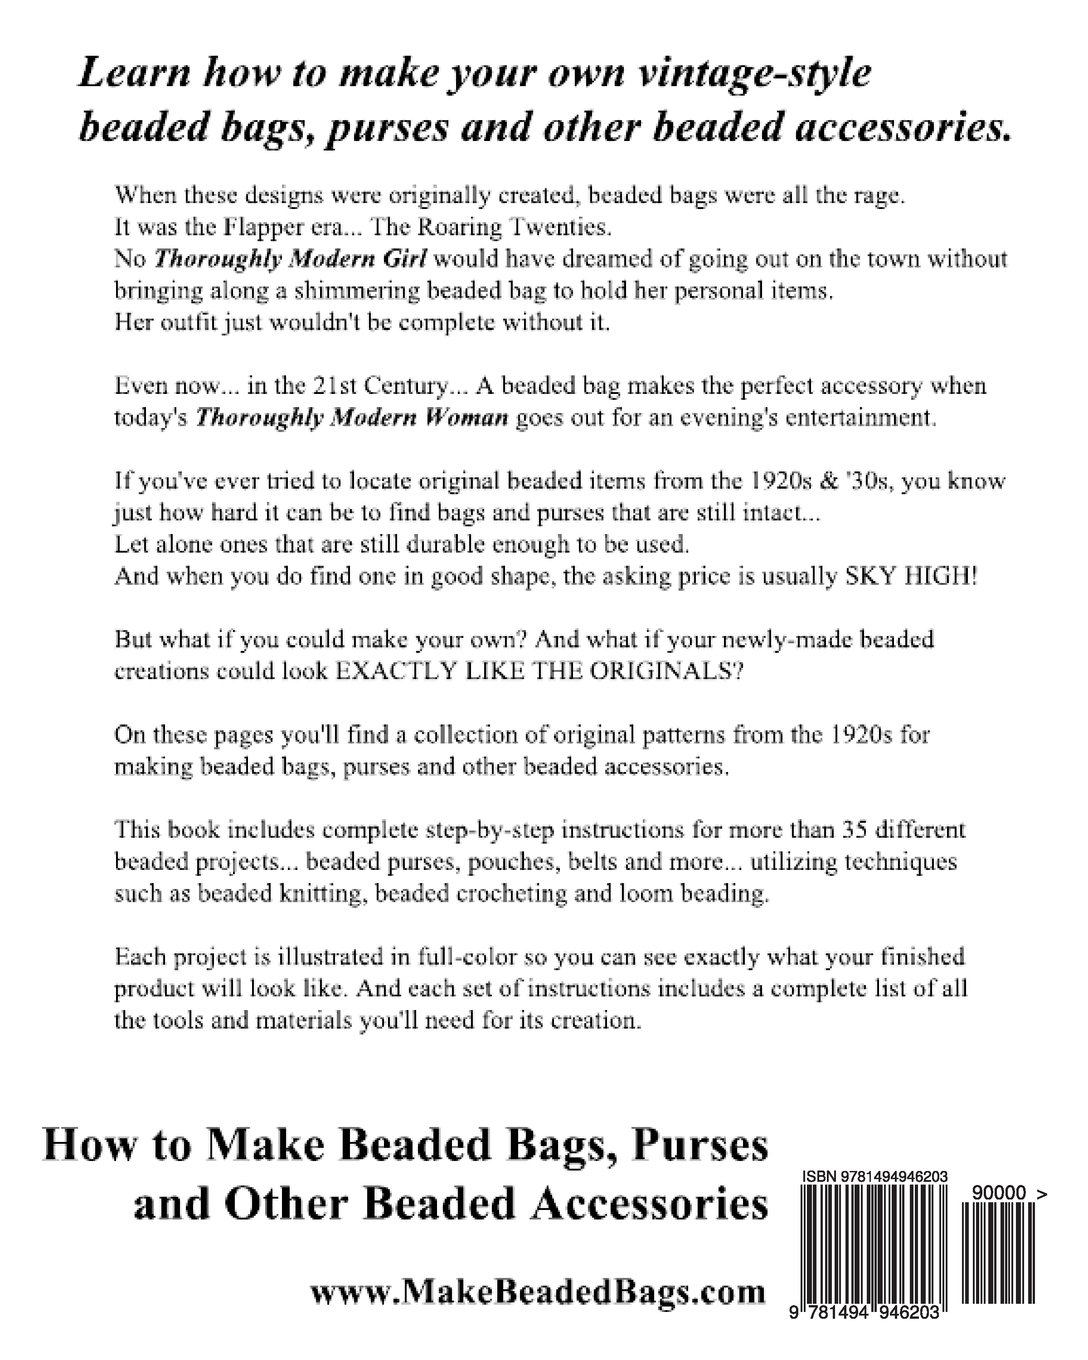 How to Make Beaded Bags, Purses and Other Beaded Accessories: 35 ...